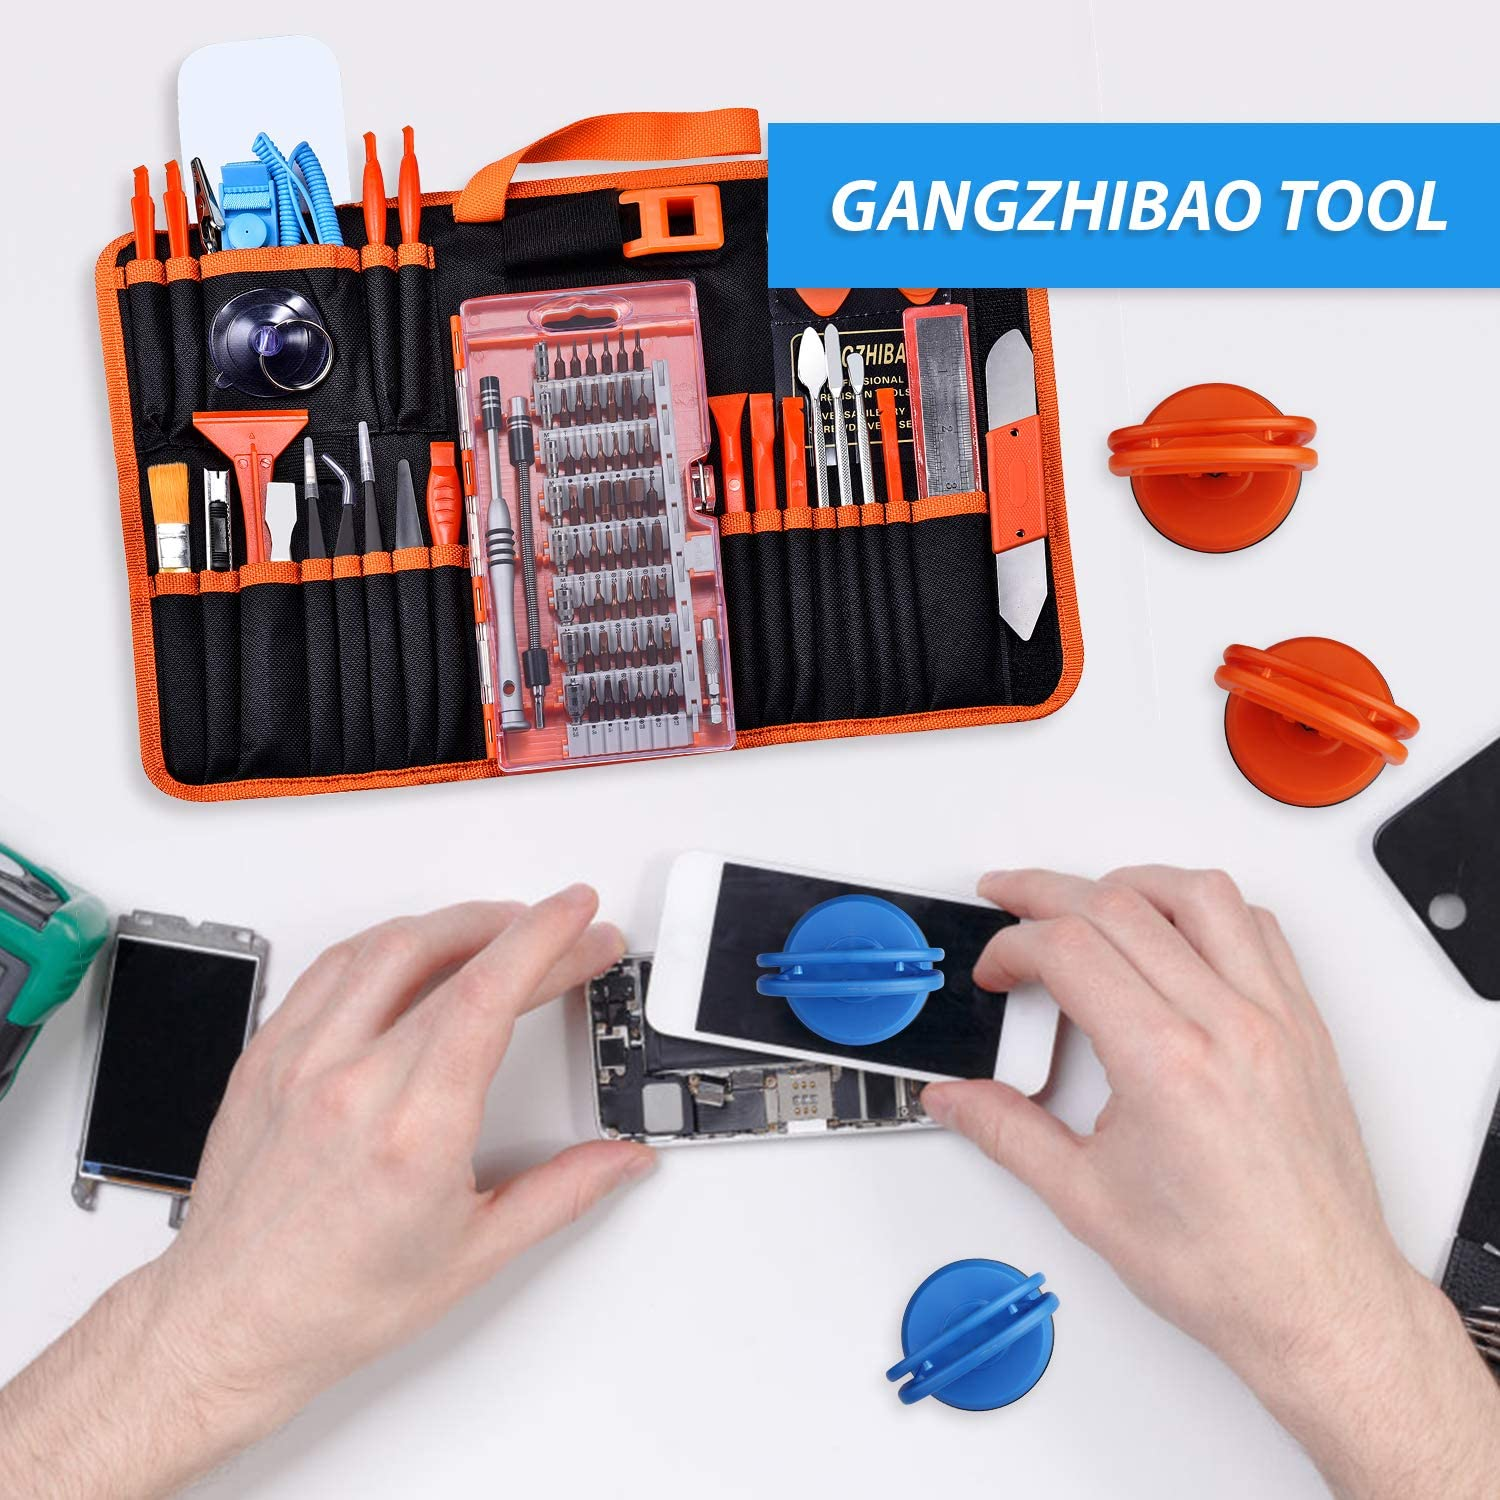 GANGZHIBAO 90pcs Electronics Repair Tool Kit Professional+4pcs suction cup for MacBook iMac,iPhone,PC,iPad,Tablet,LCD Screen Opening Tool